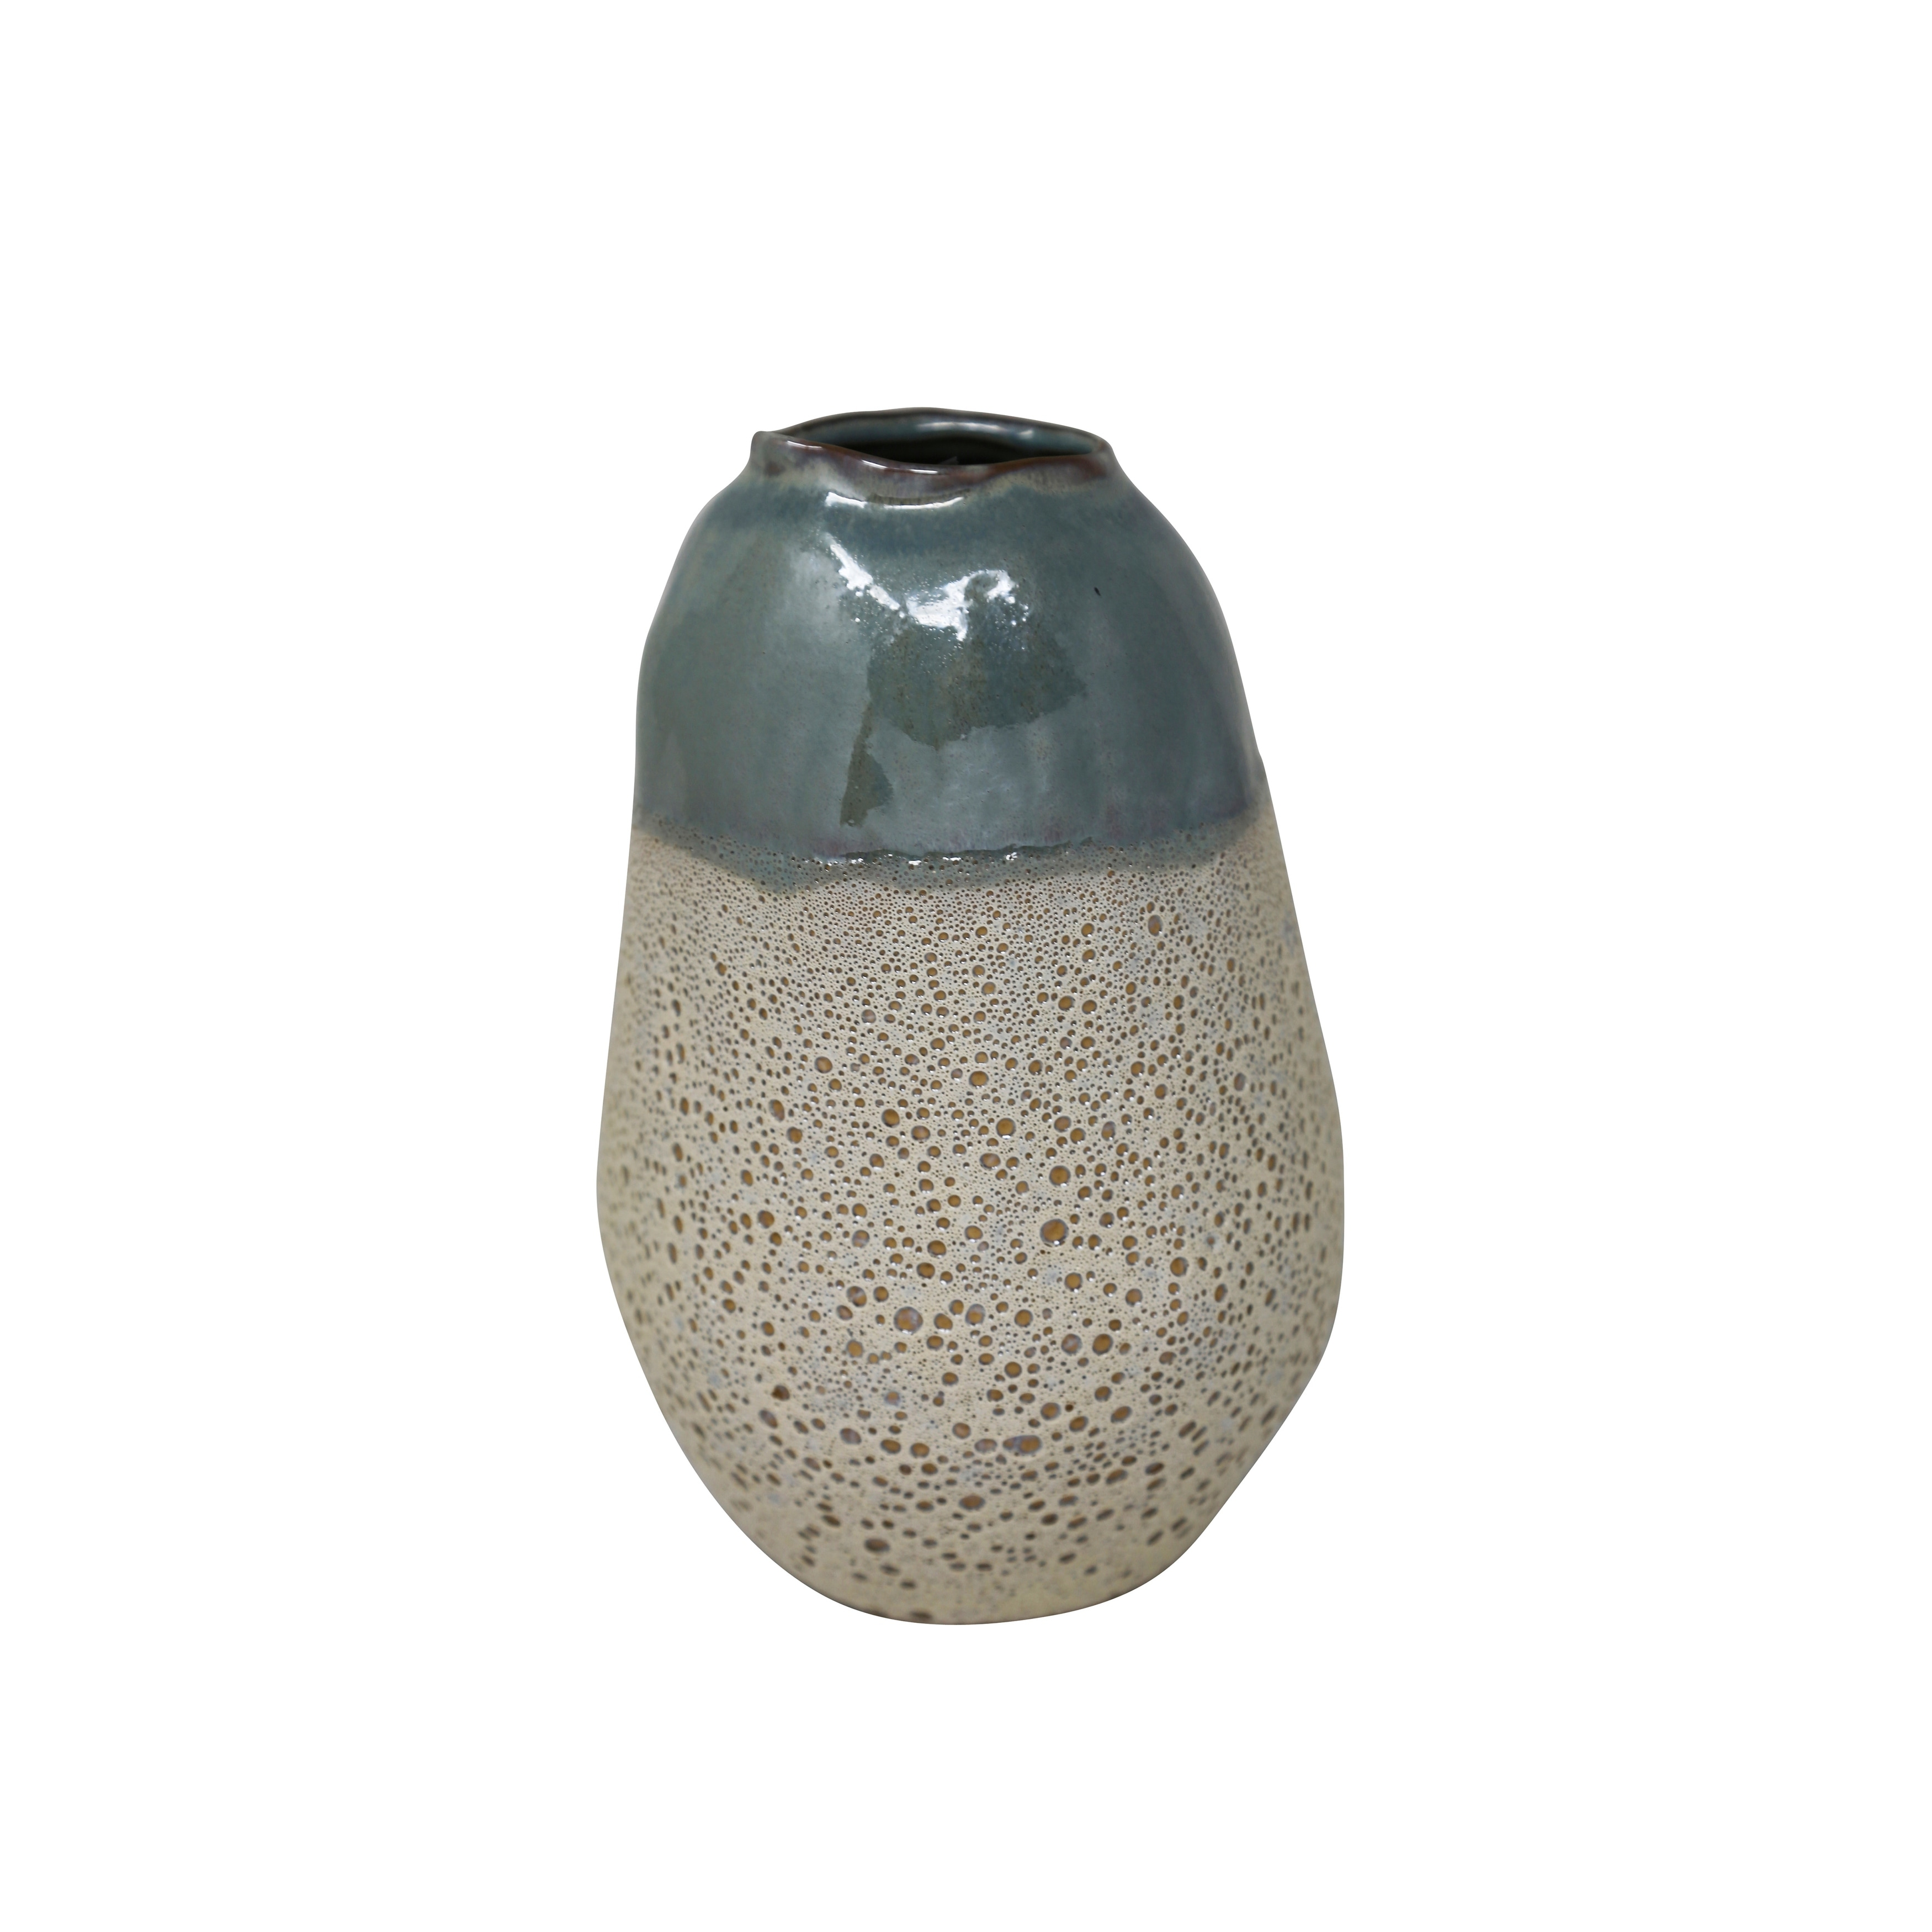 Ceramic Two Toned Vase with Irregular Mouth Rim and Tapered Bottom, Medium, Blue and Beige